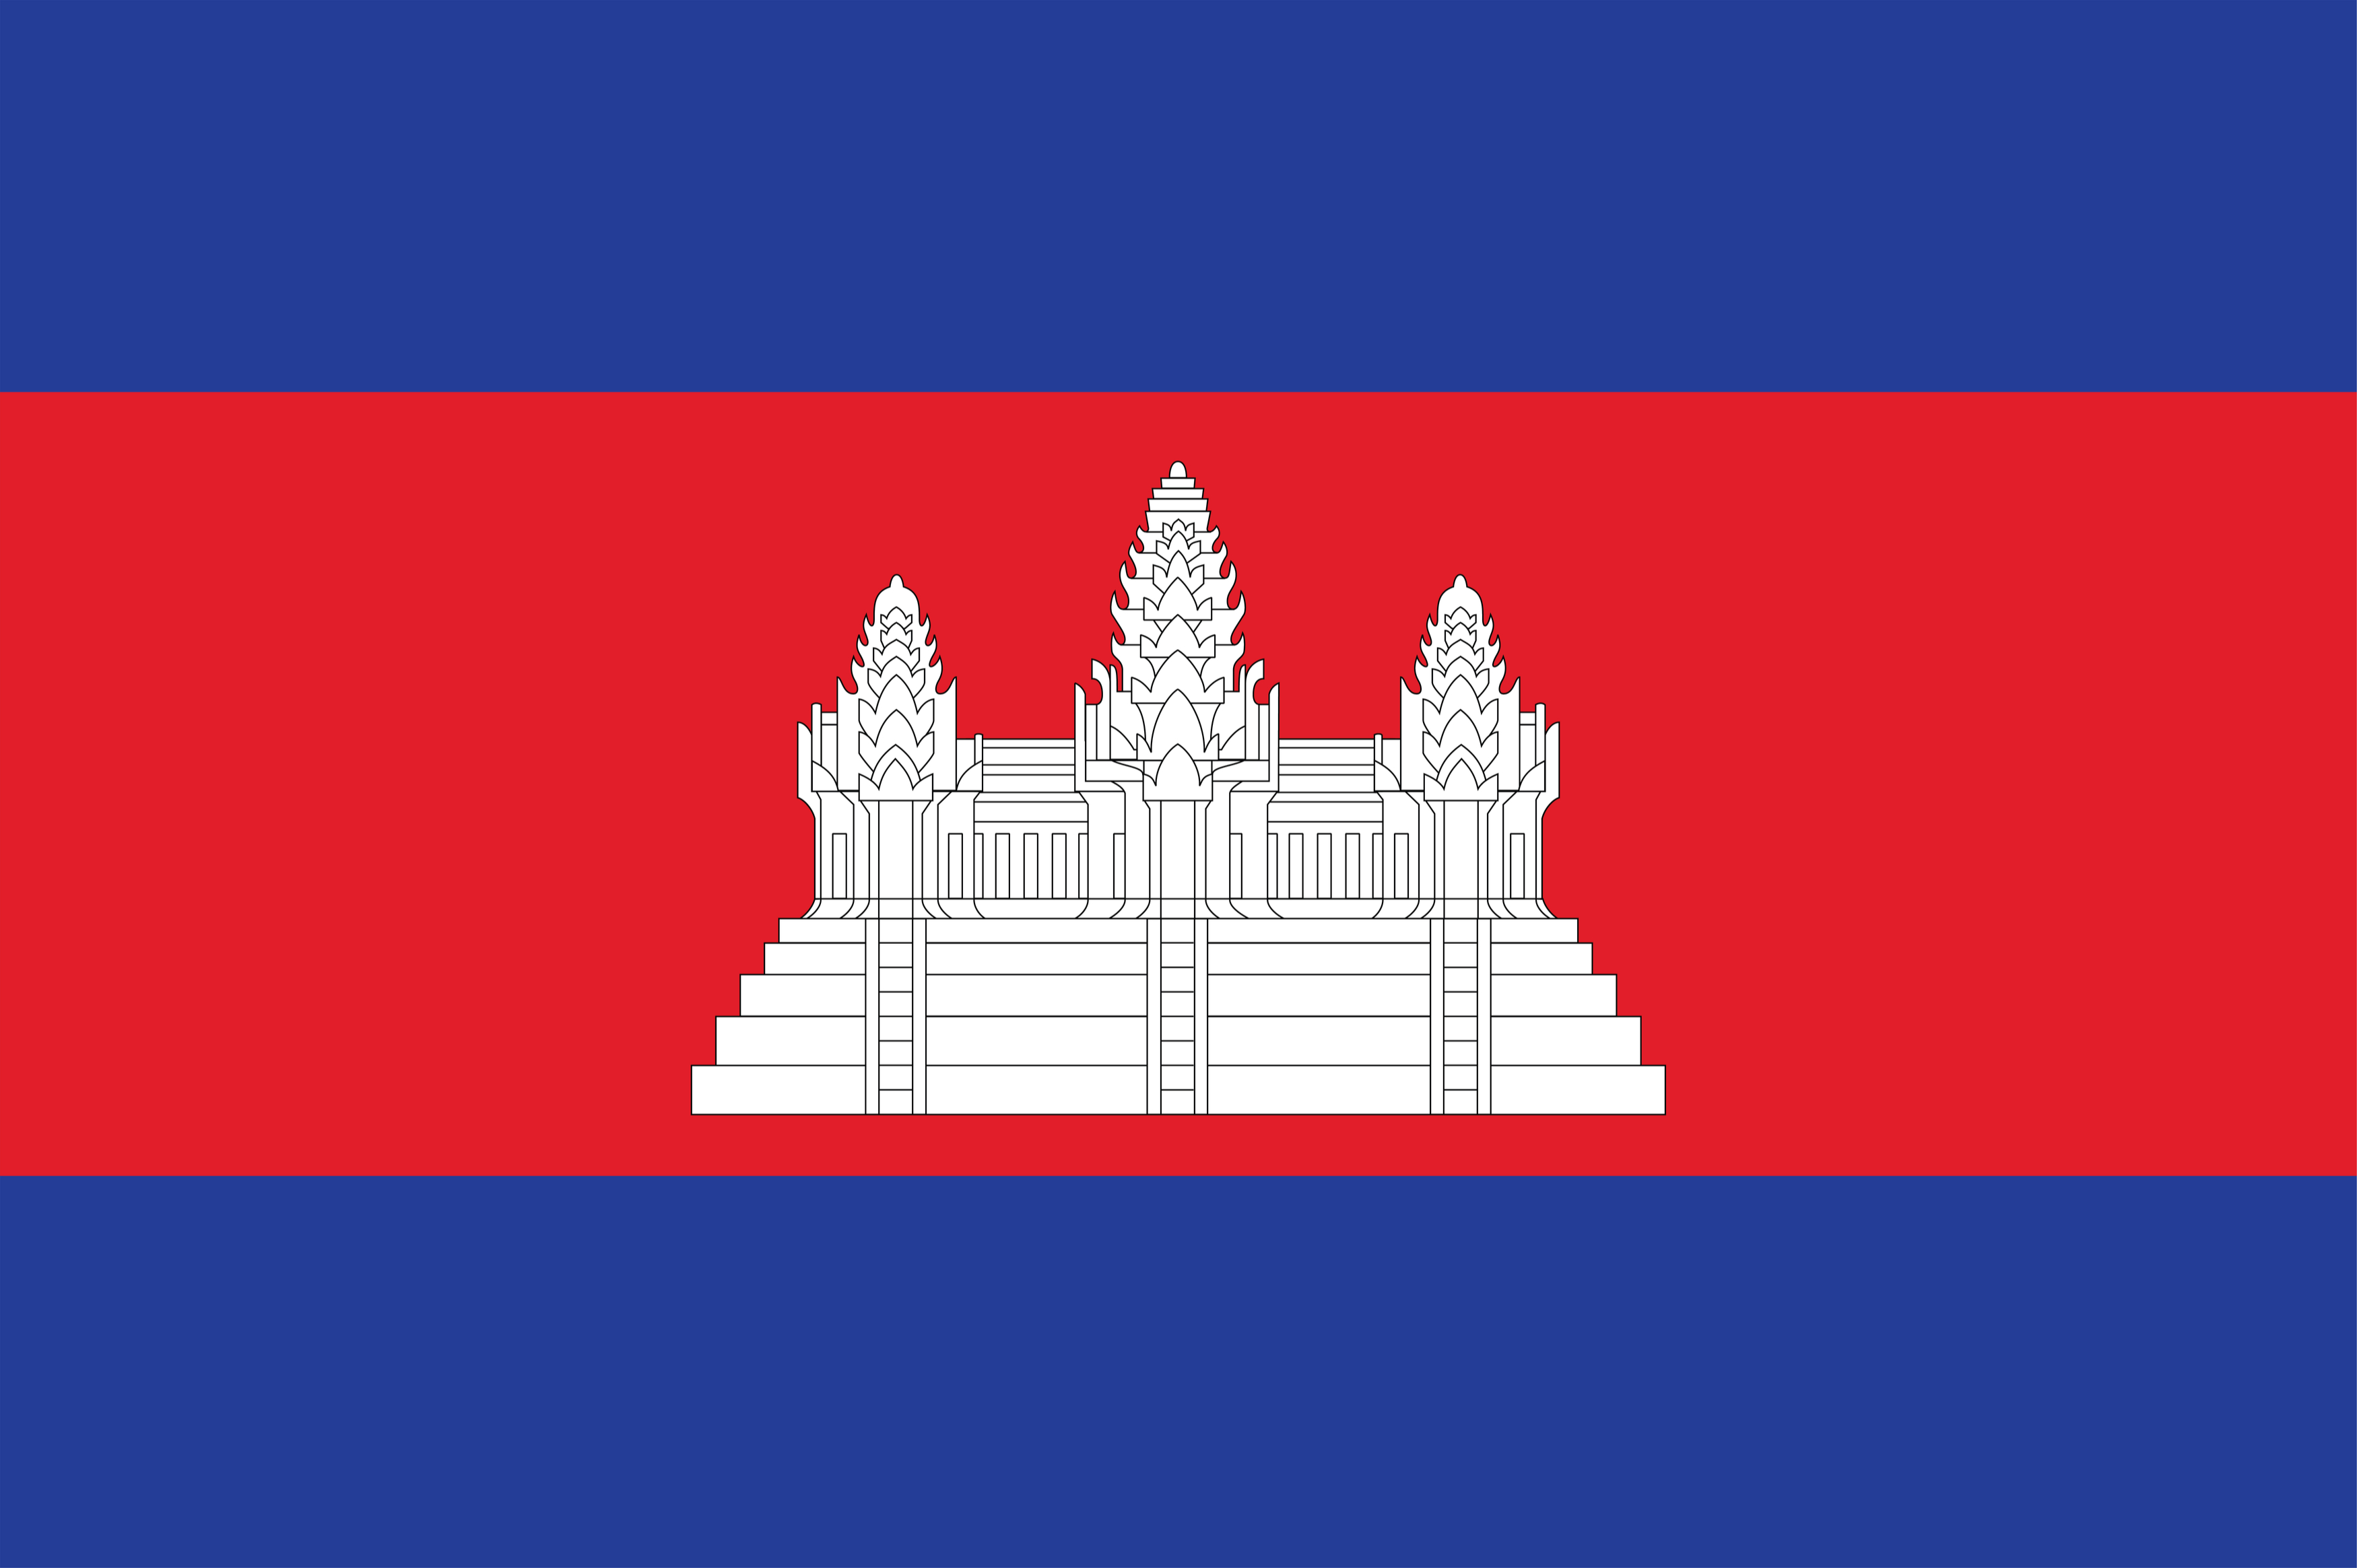 The flag of Cambodia.